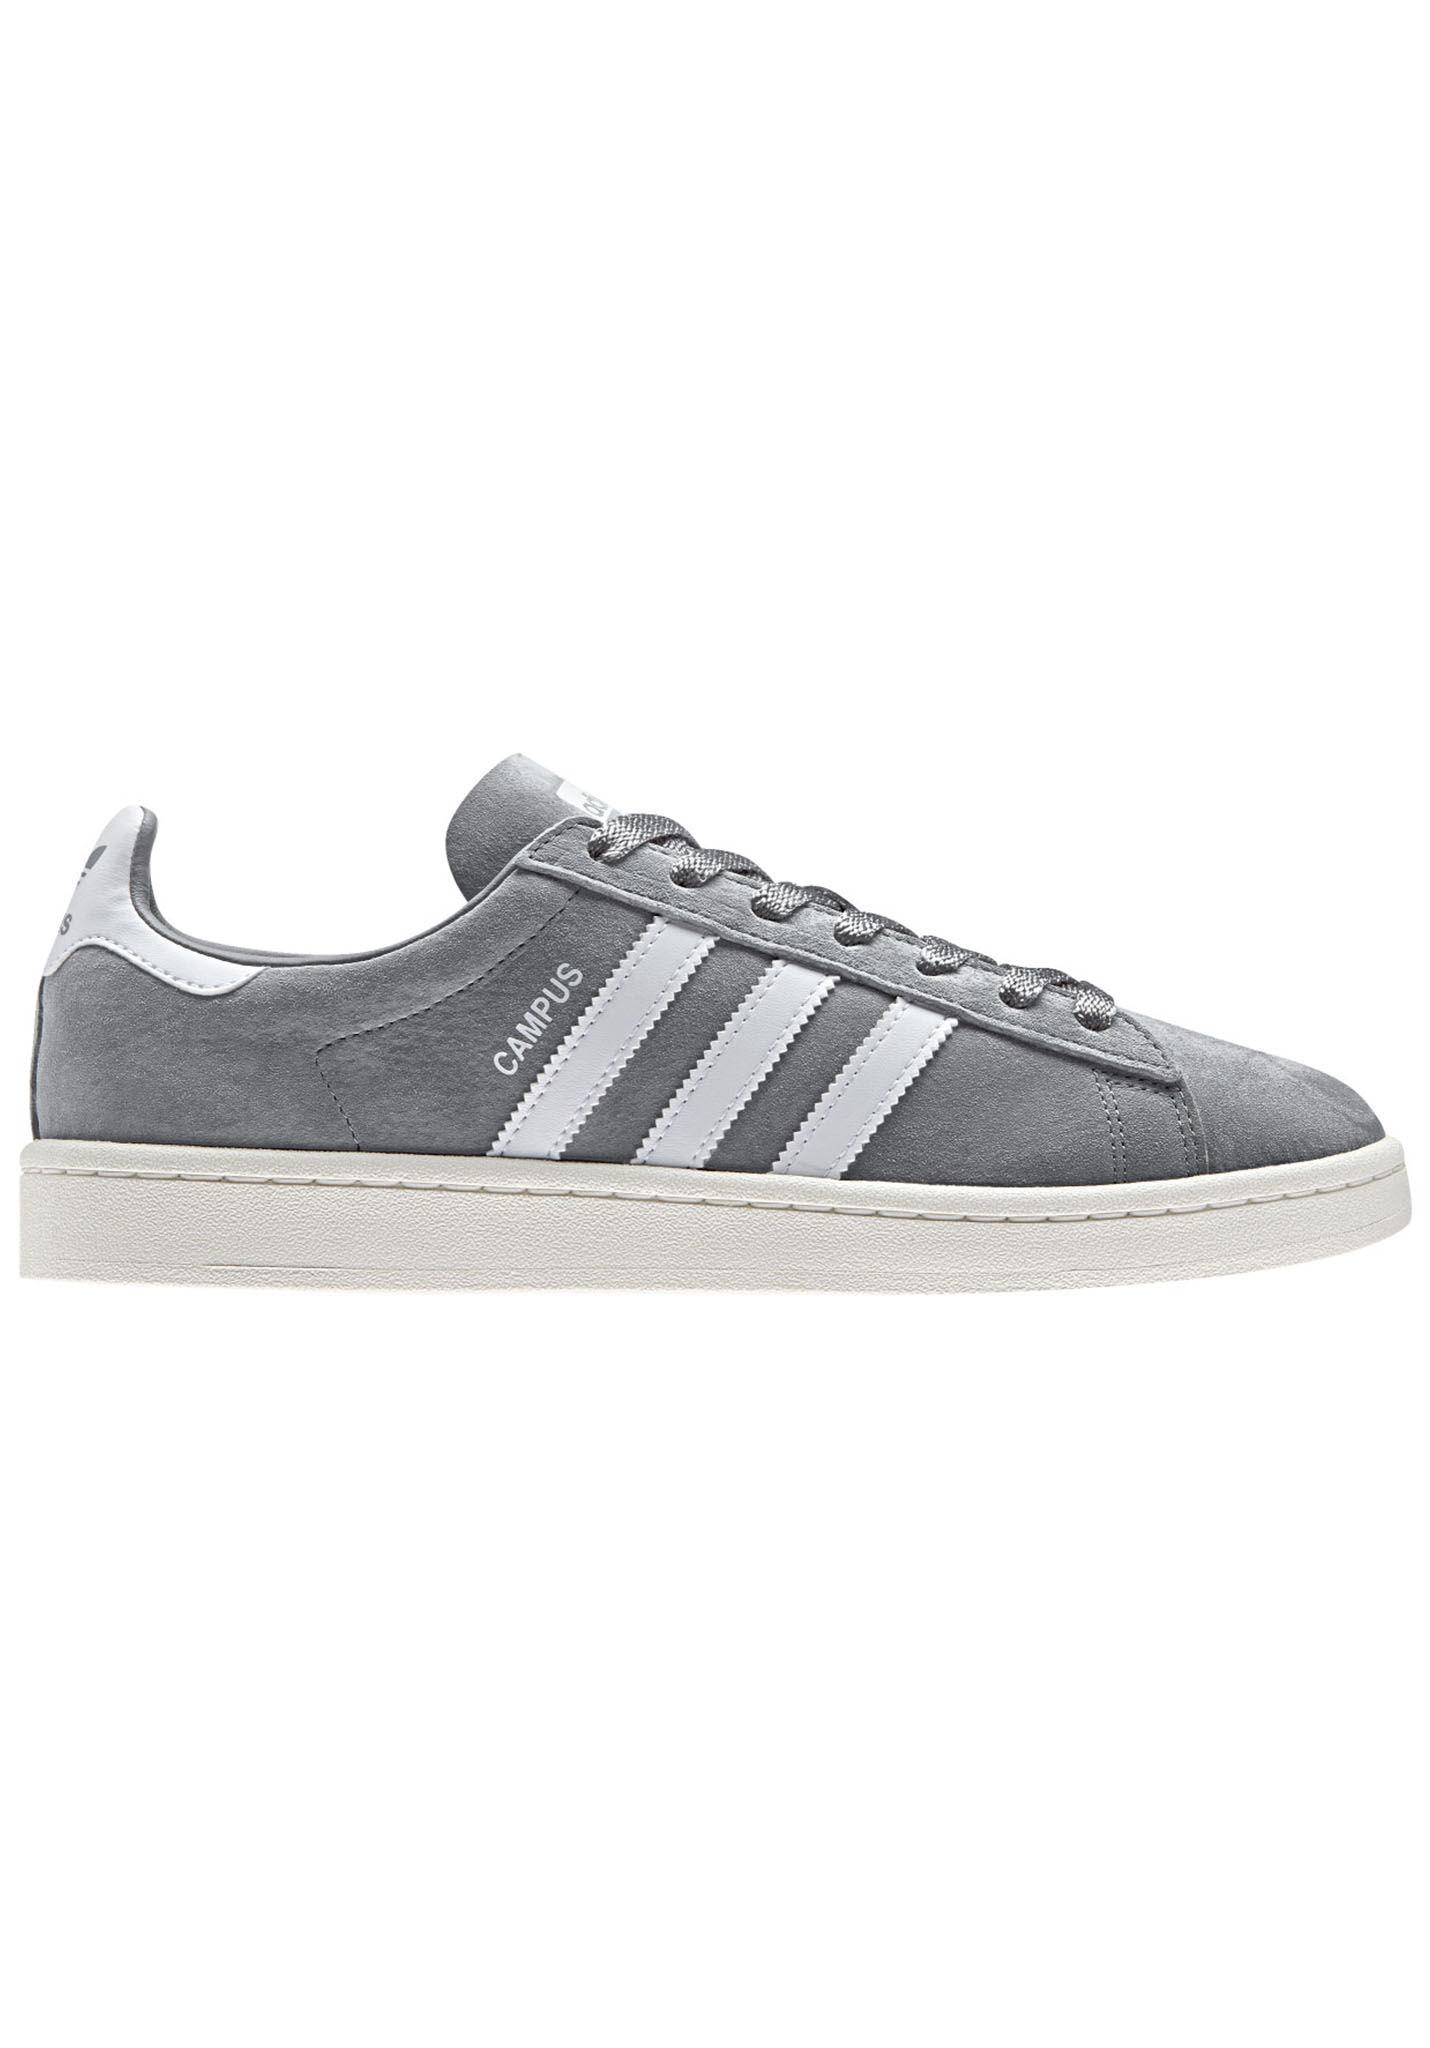 34d969b43d80 ADIDAS ORIGINALS Campus - Sneakers for Men - Grey - Planet Sports